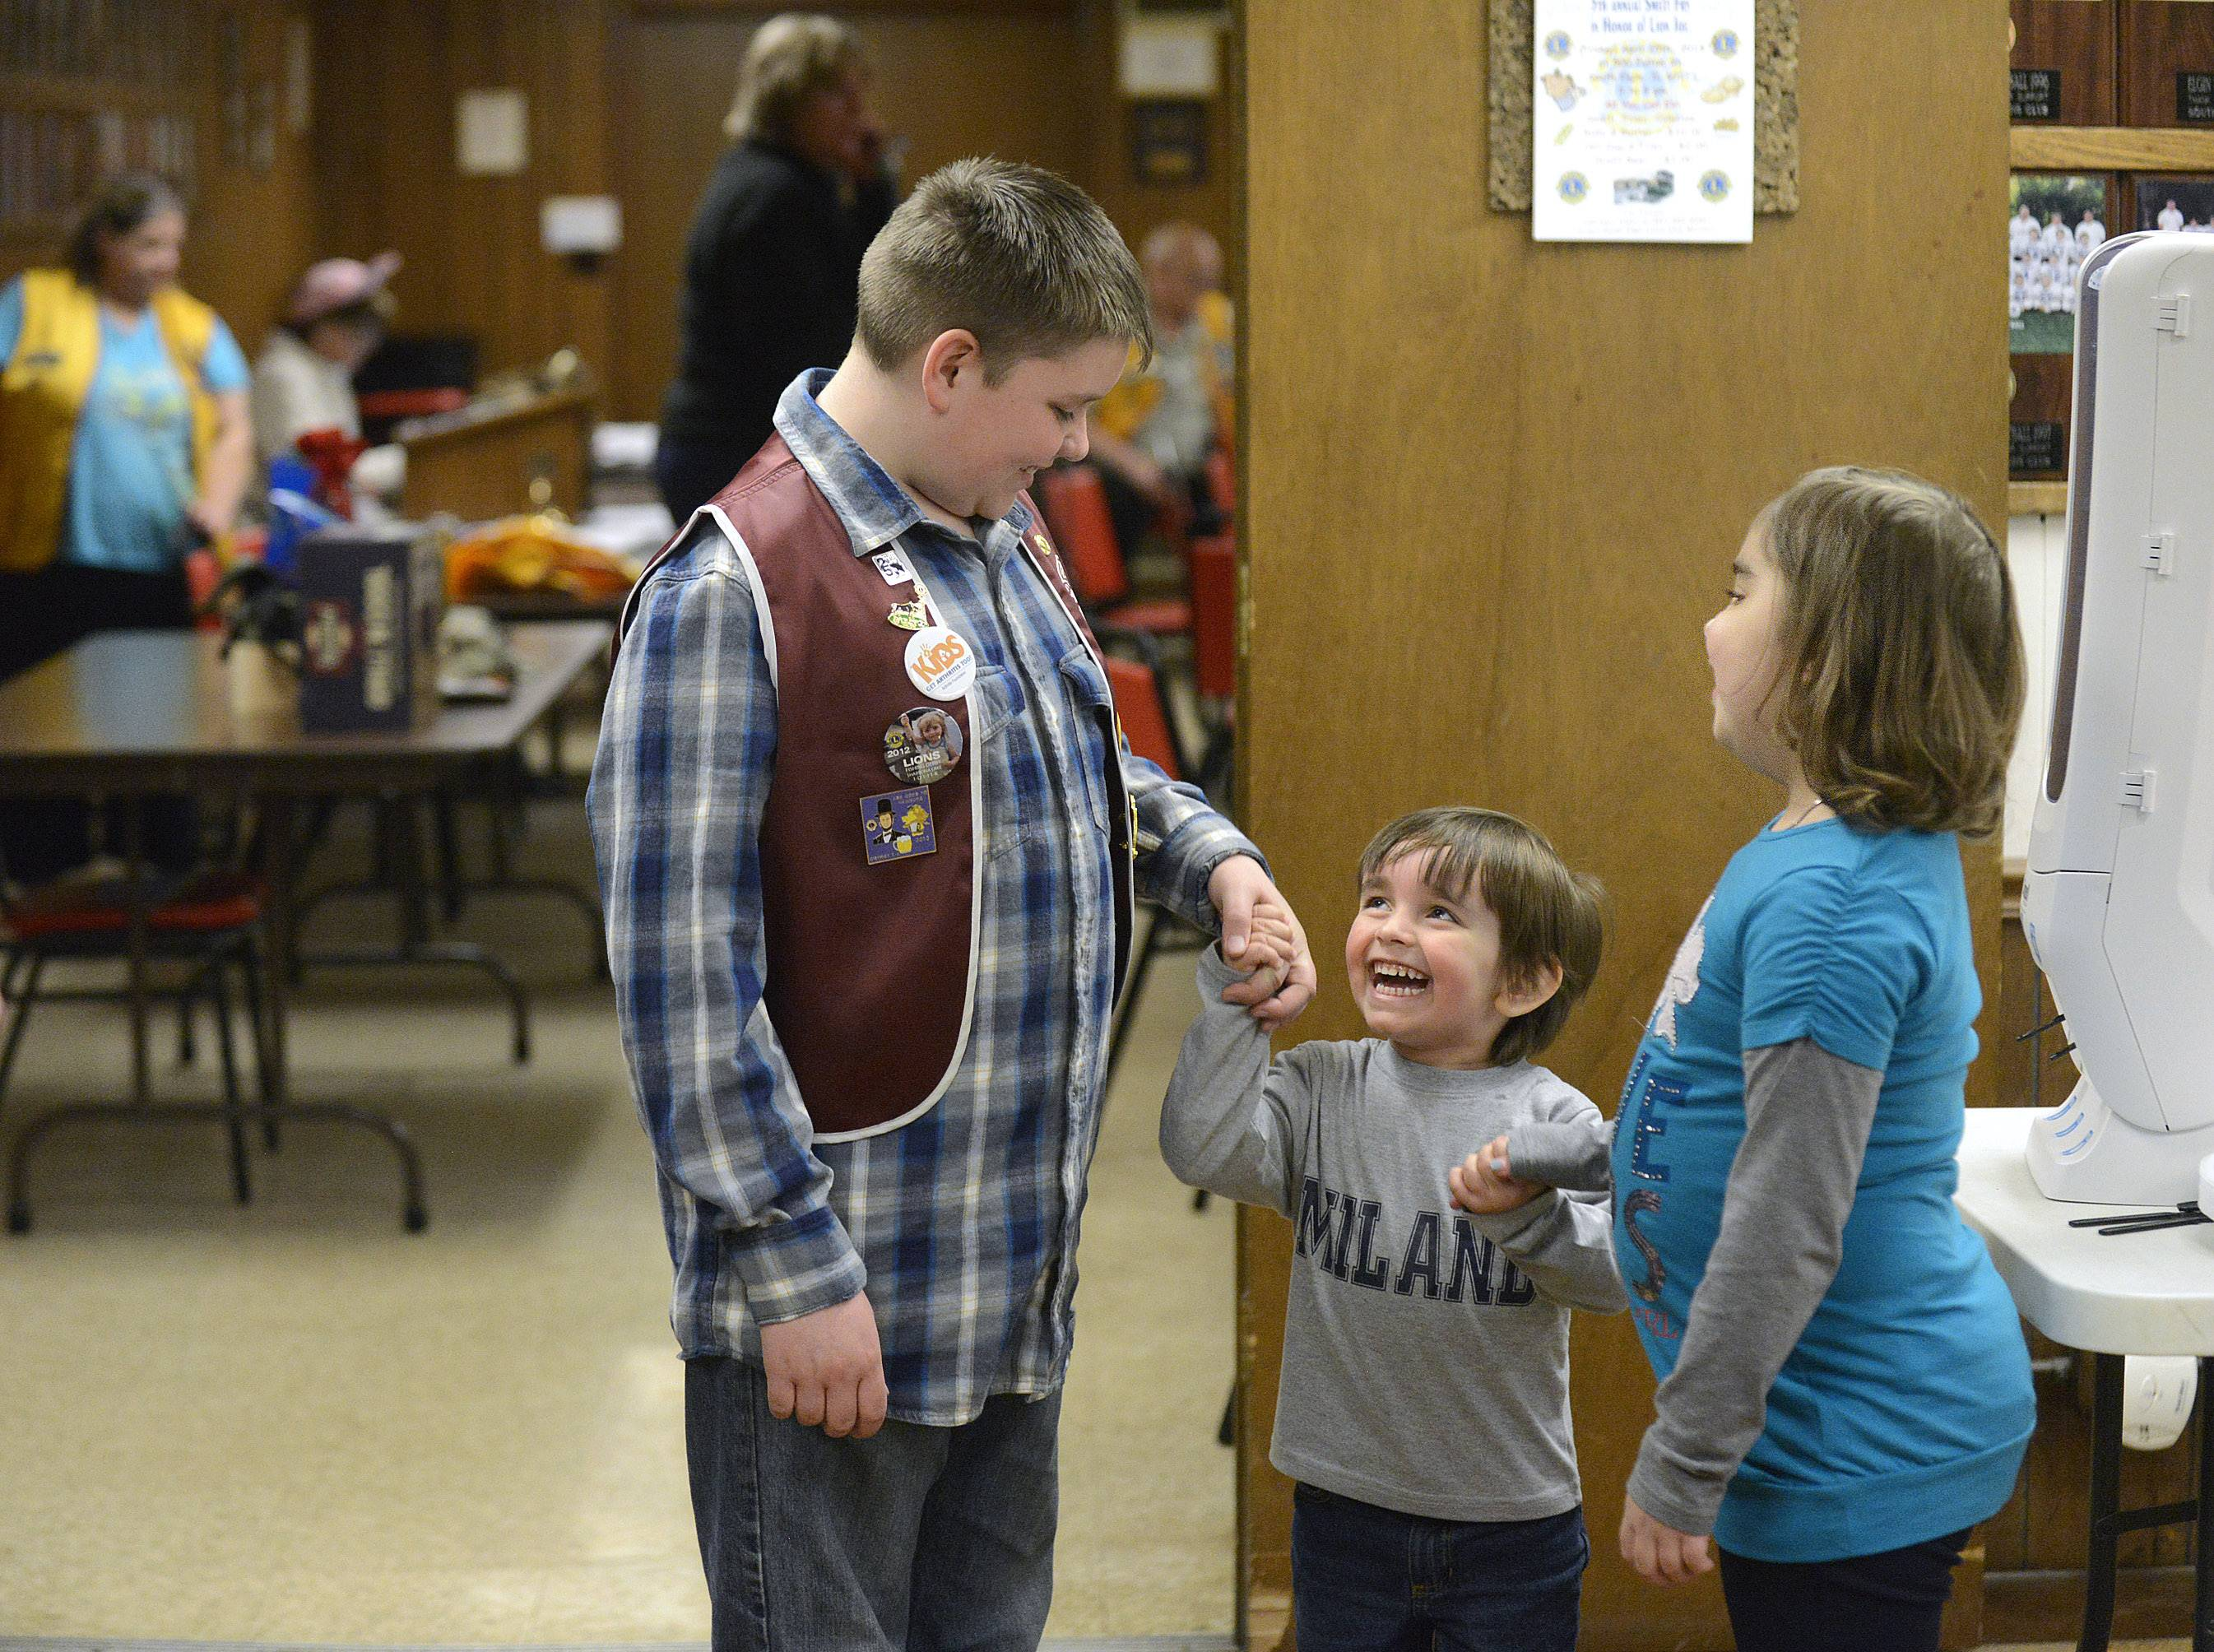 Dylan Snyder, 11, and Maria Serban, 6, they play with her younger brother, Victor, 3½, after Dylan presented Maria and her mother, Elena, with a check for close to $4,000 at the South Elgin Lions Club on Wednesday, April 2. Maria, a first-grader at Willard Elementary School, has a rare form of arthritis and was very sick the past few months. Dylan, a fifth-grader at the school, raised funds with a spaghetti dinner and auction last month at the Lions Club where his great grandfather, Leo Snyder, is a member.